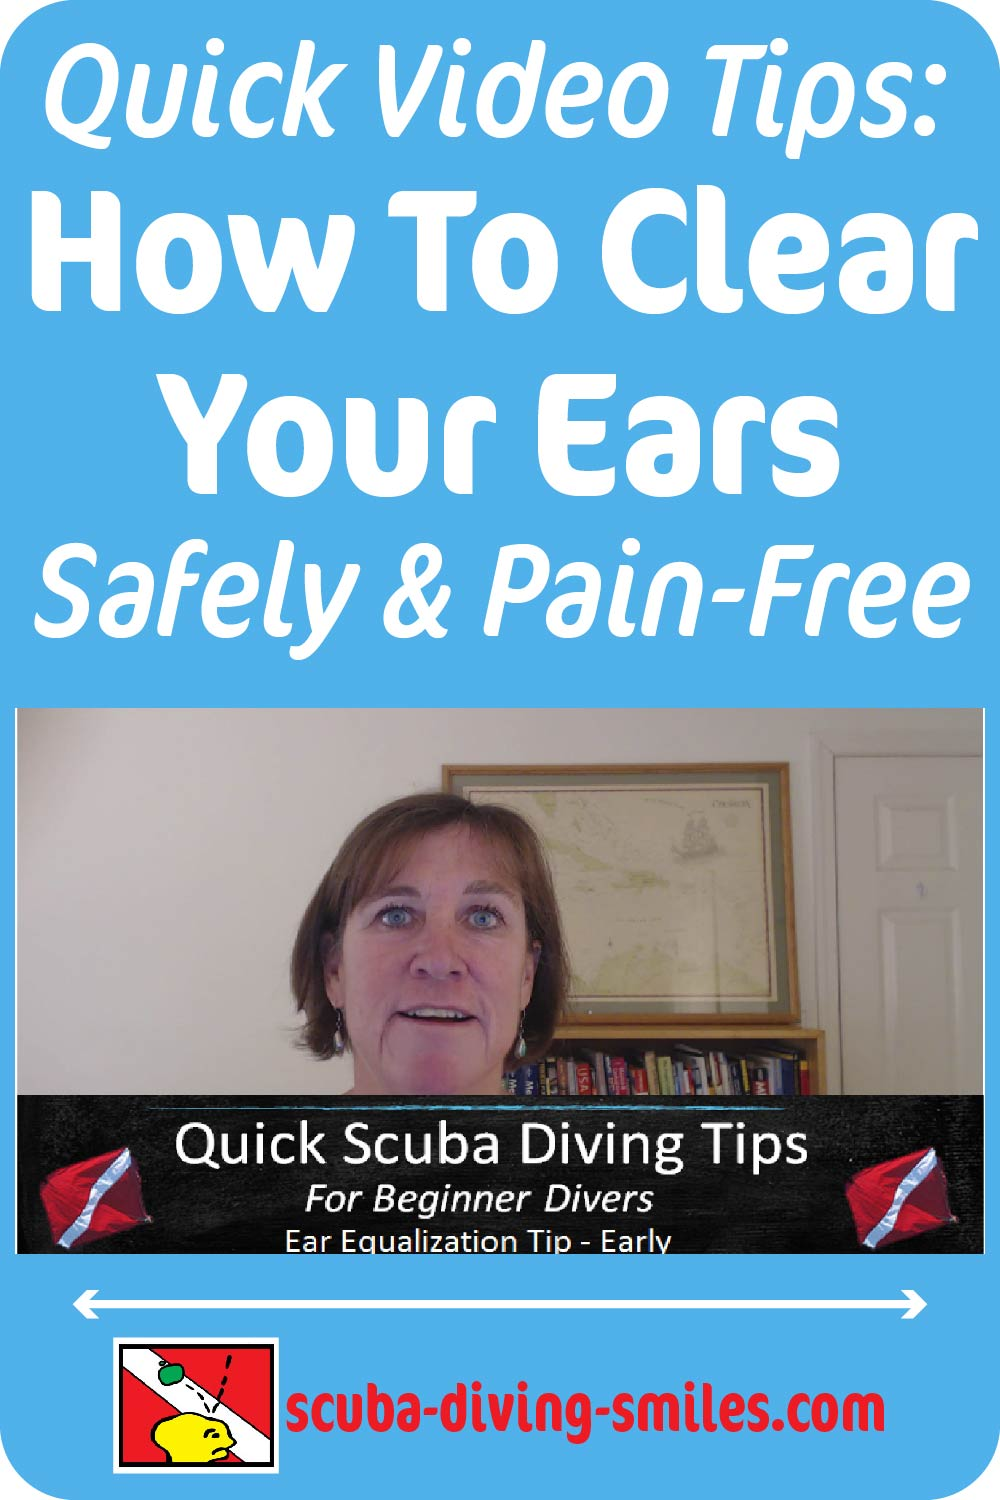 Quick video with ear equalization tips when scuba diving. How to clear your ears. #scubadiving #scubadivingtips #earclearing #scubadivingsmiles